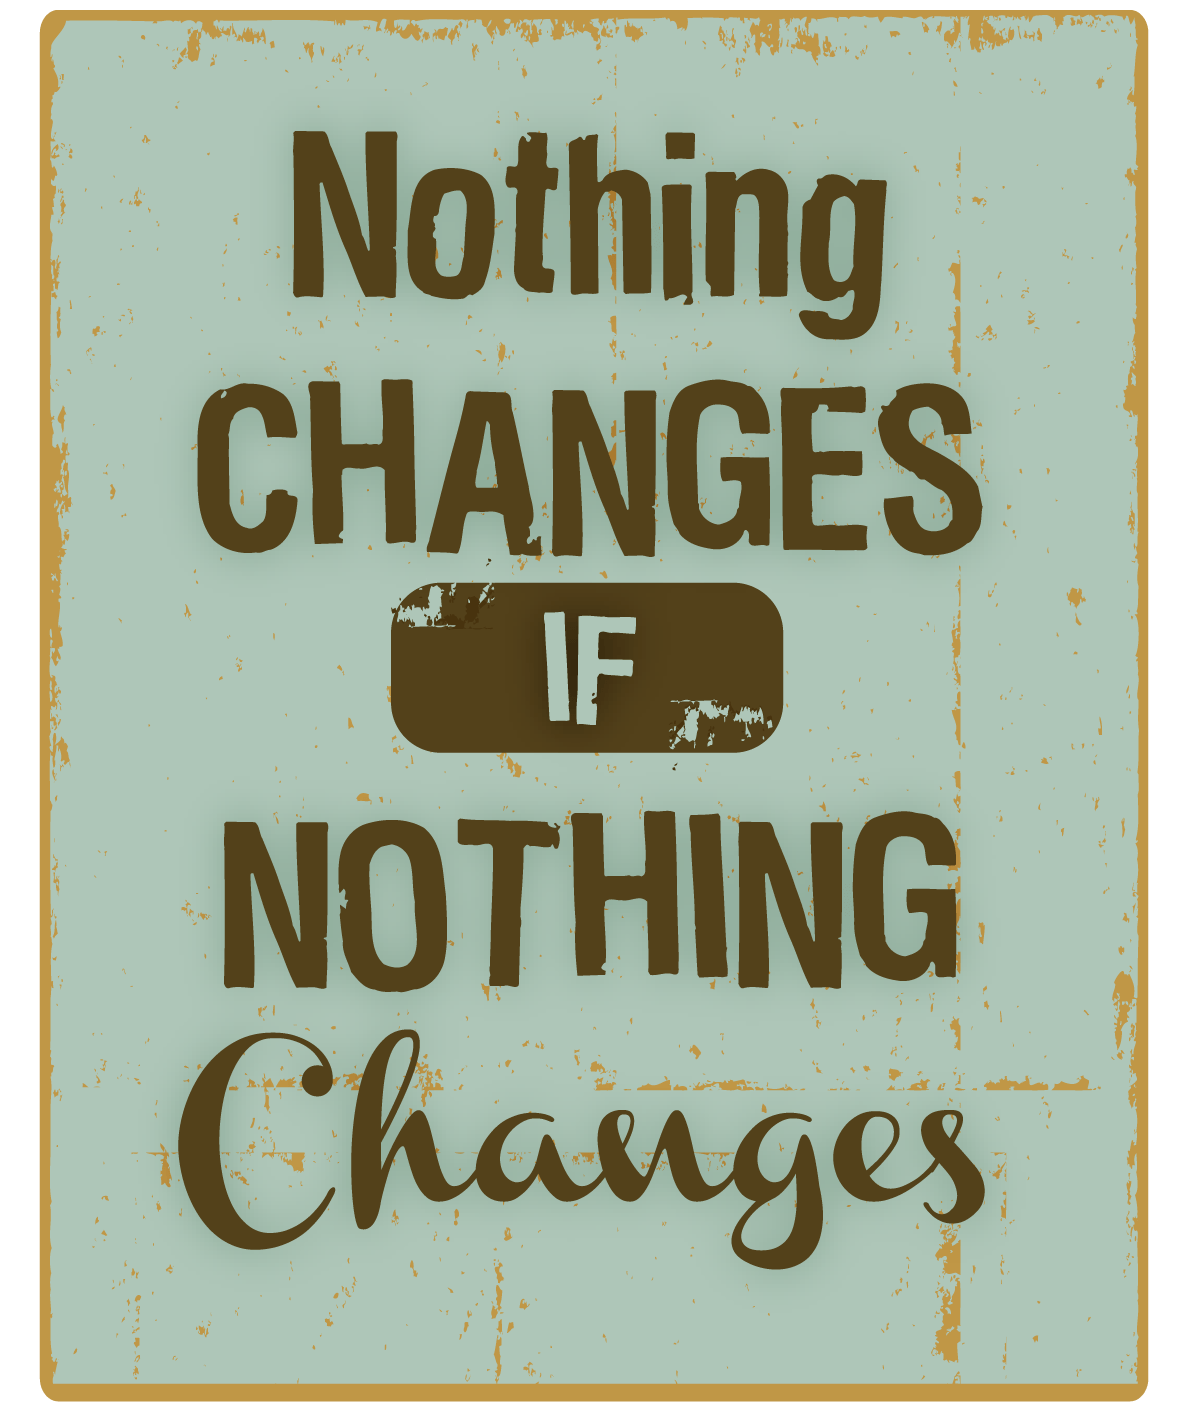 nothingchanges